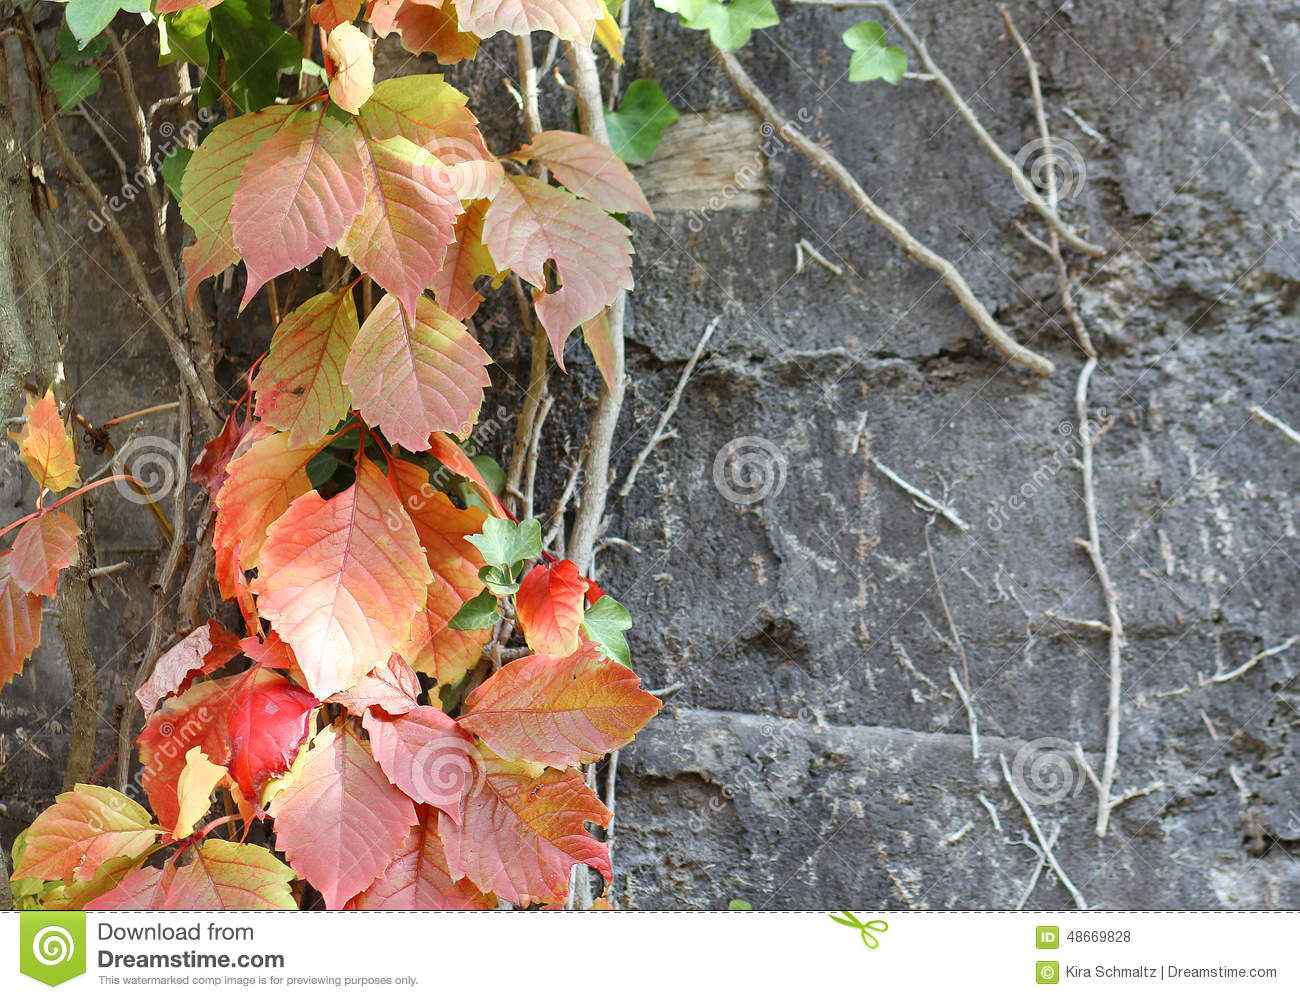 The Liana With Colorful Leaves Climbing At The Wall Stock Photo.